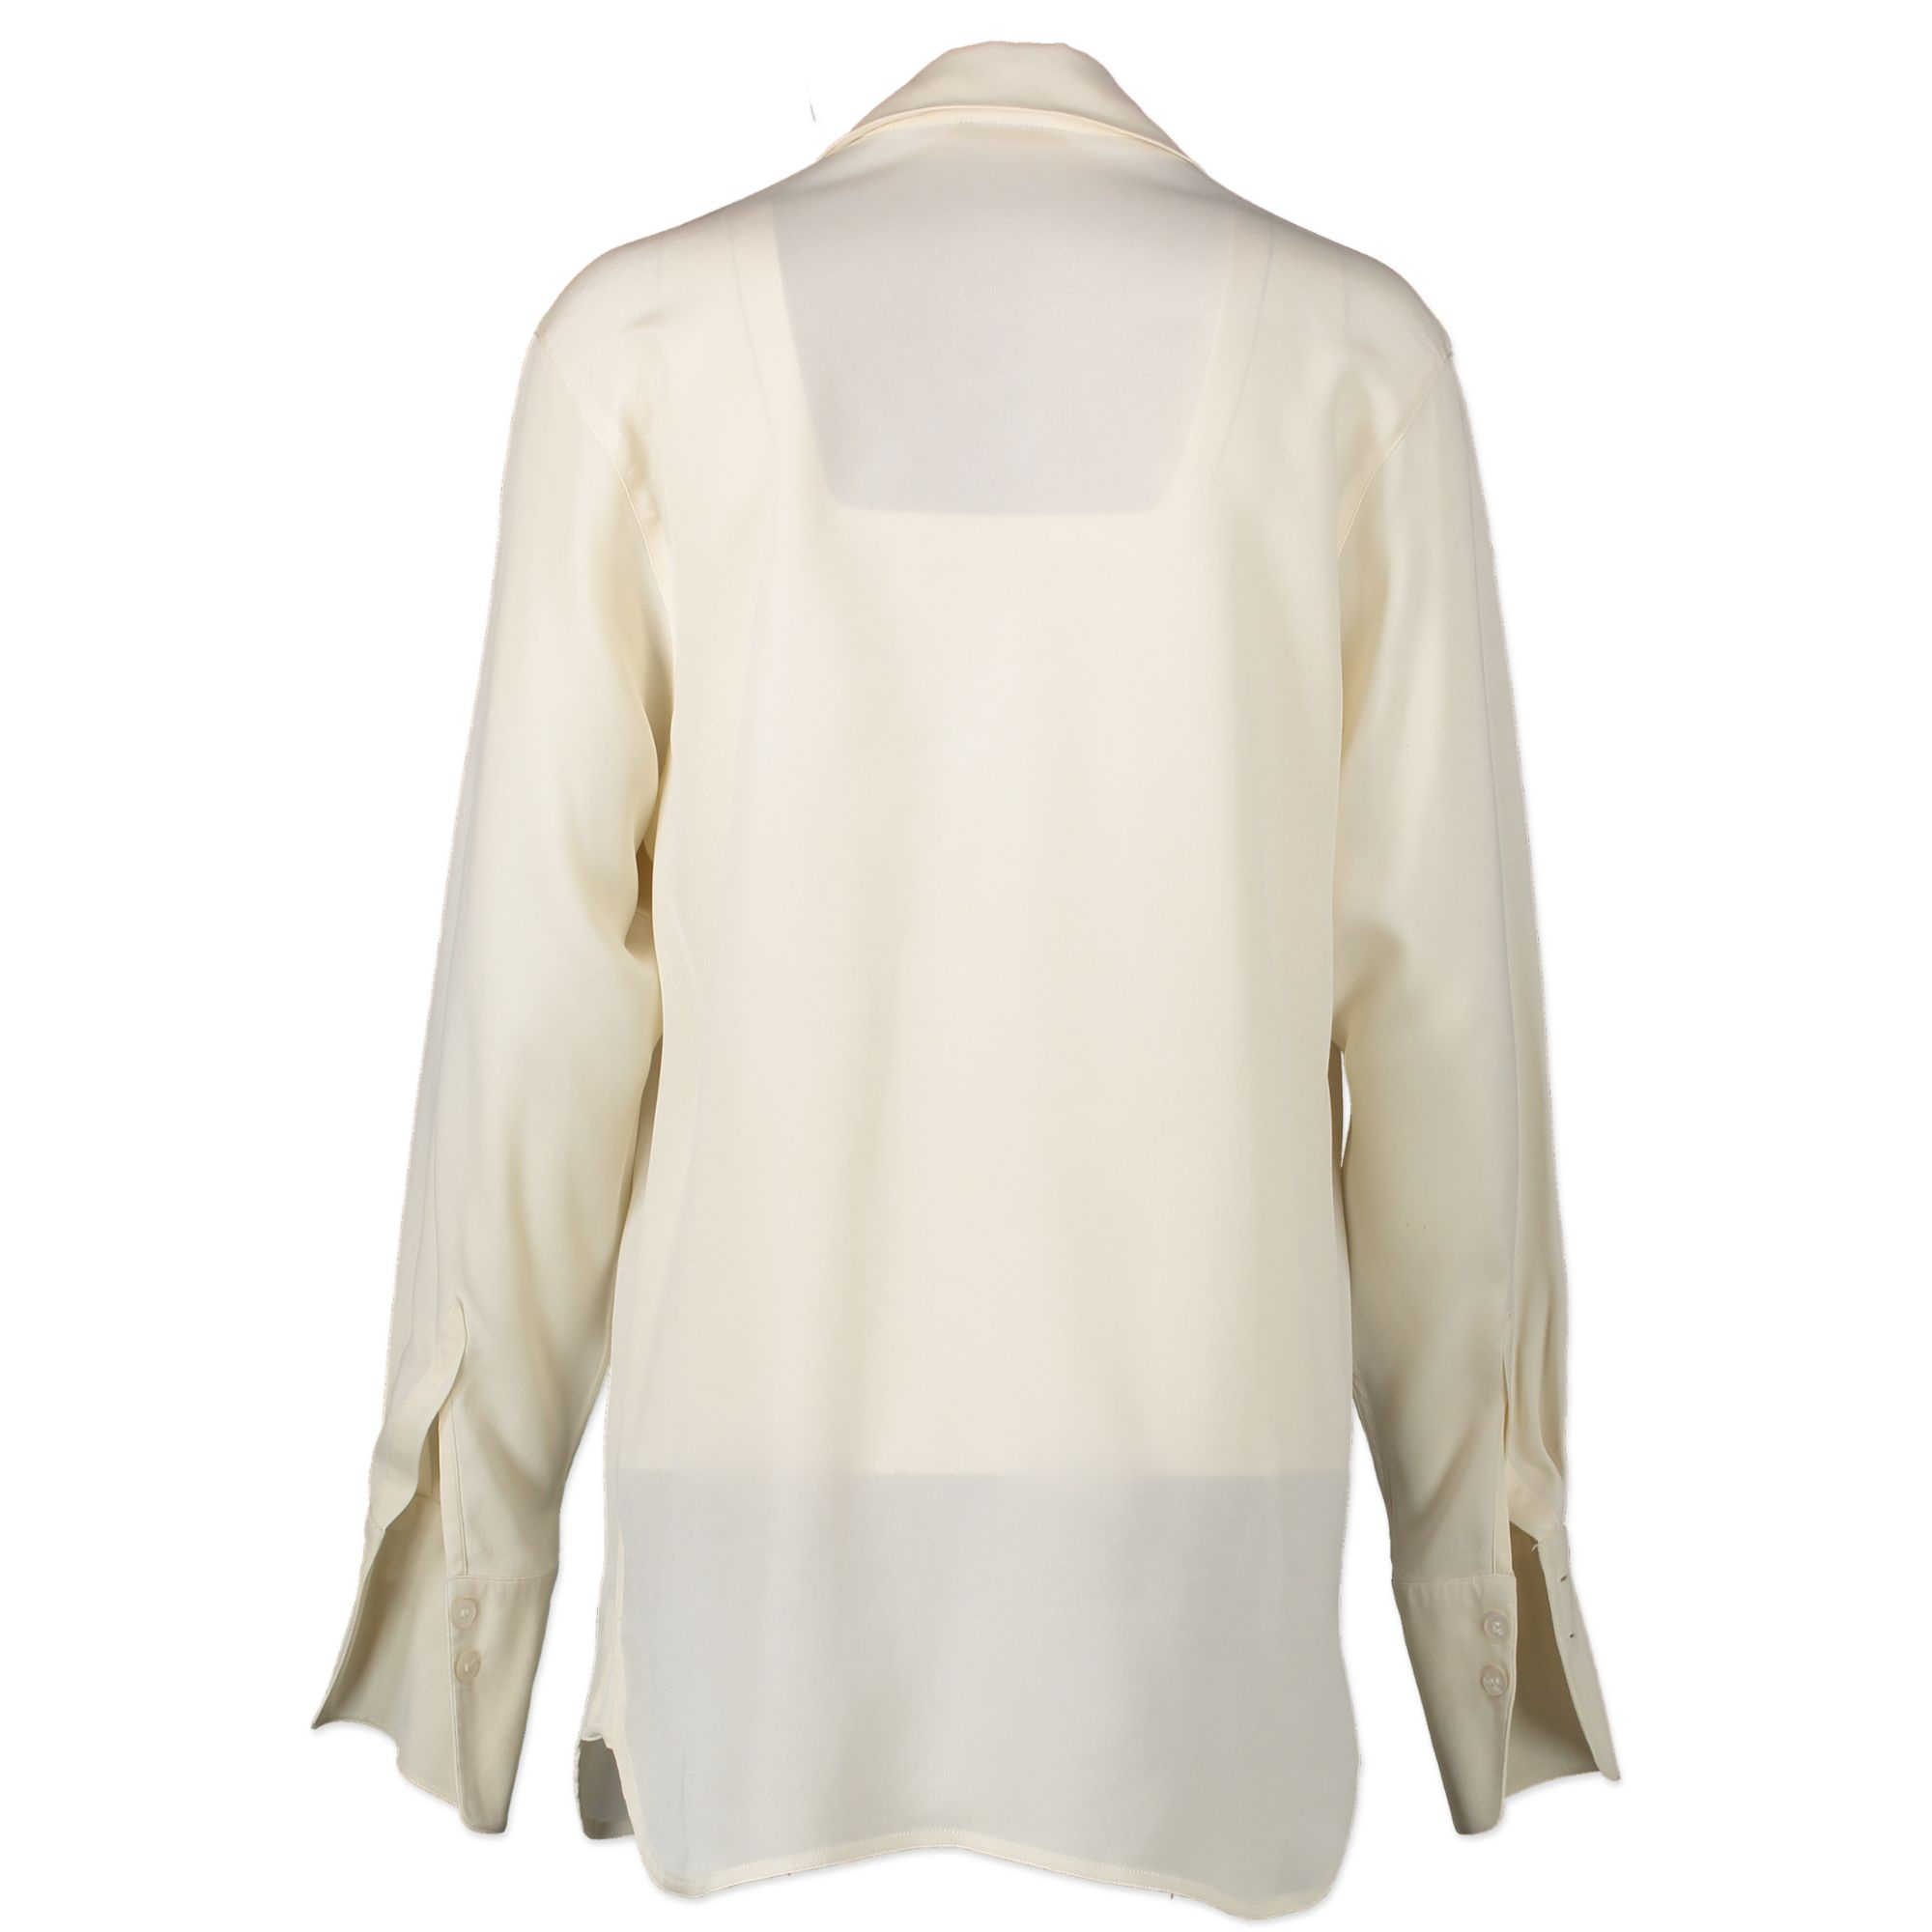 We buy and sell your authentic designer Hermes Creme Blouse - size 40